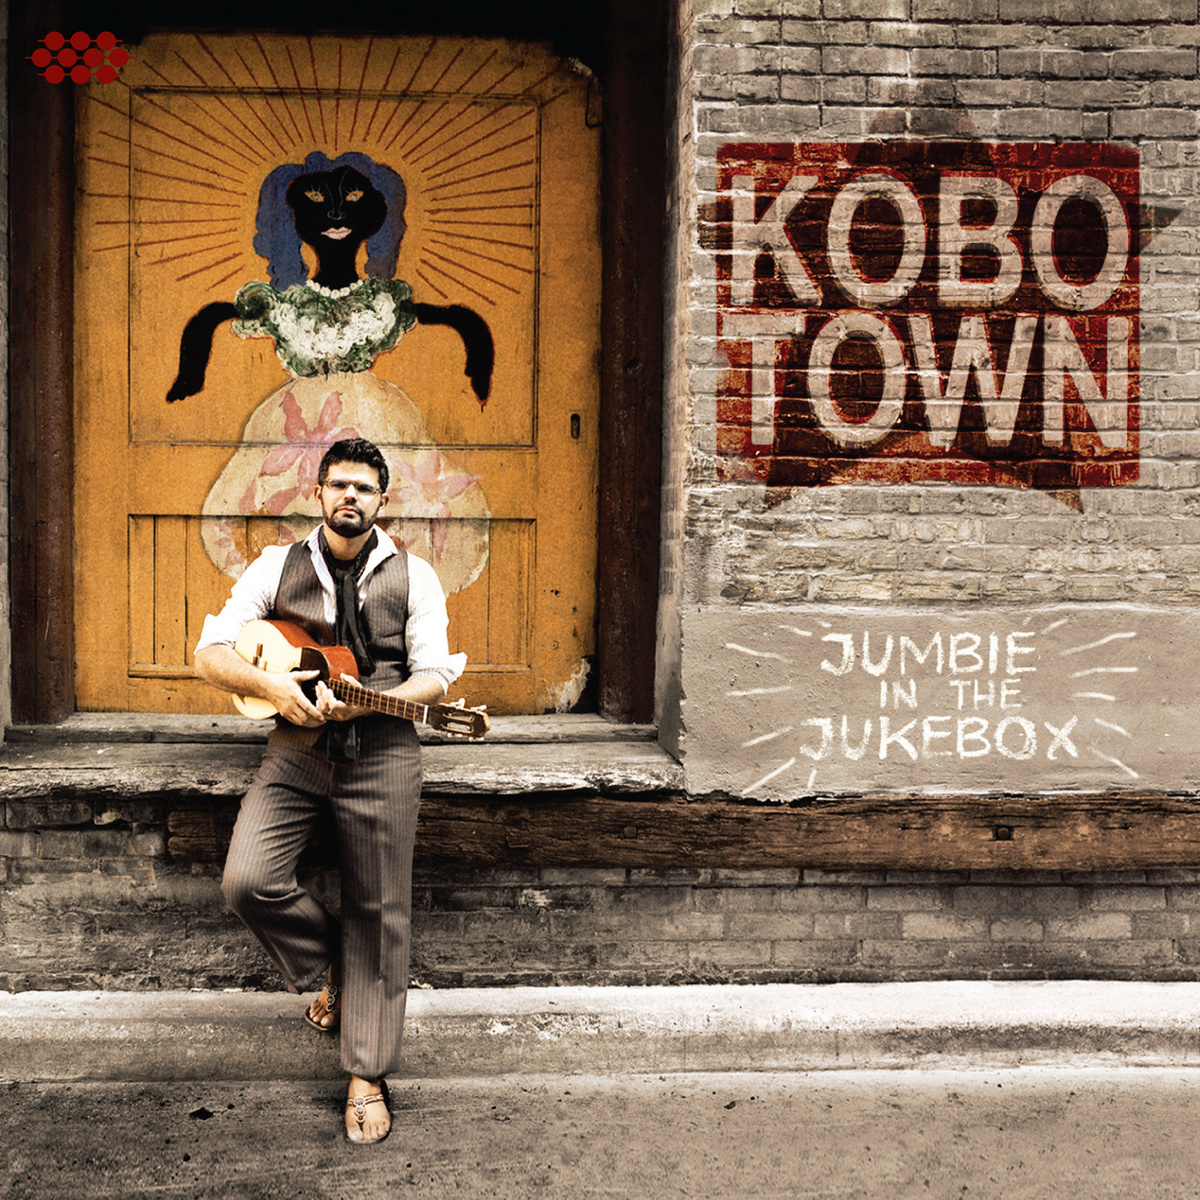 Kobo Town - Jumbie in the Jukebox Cover